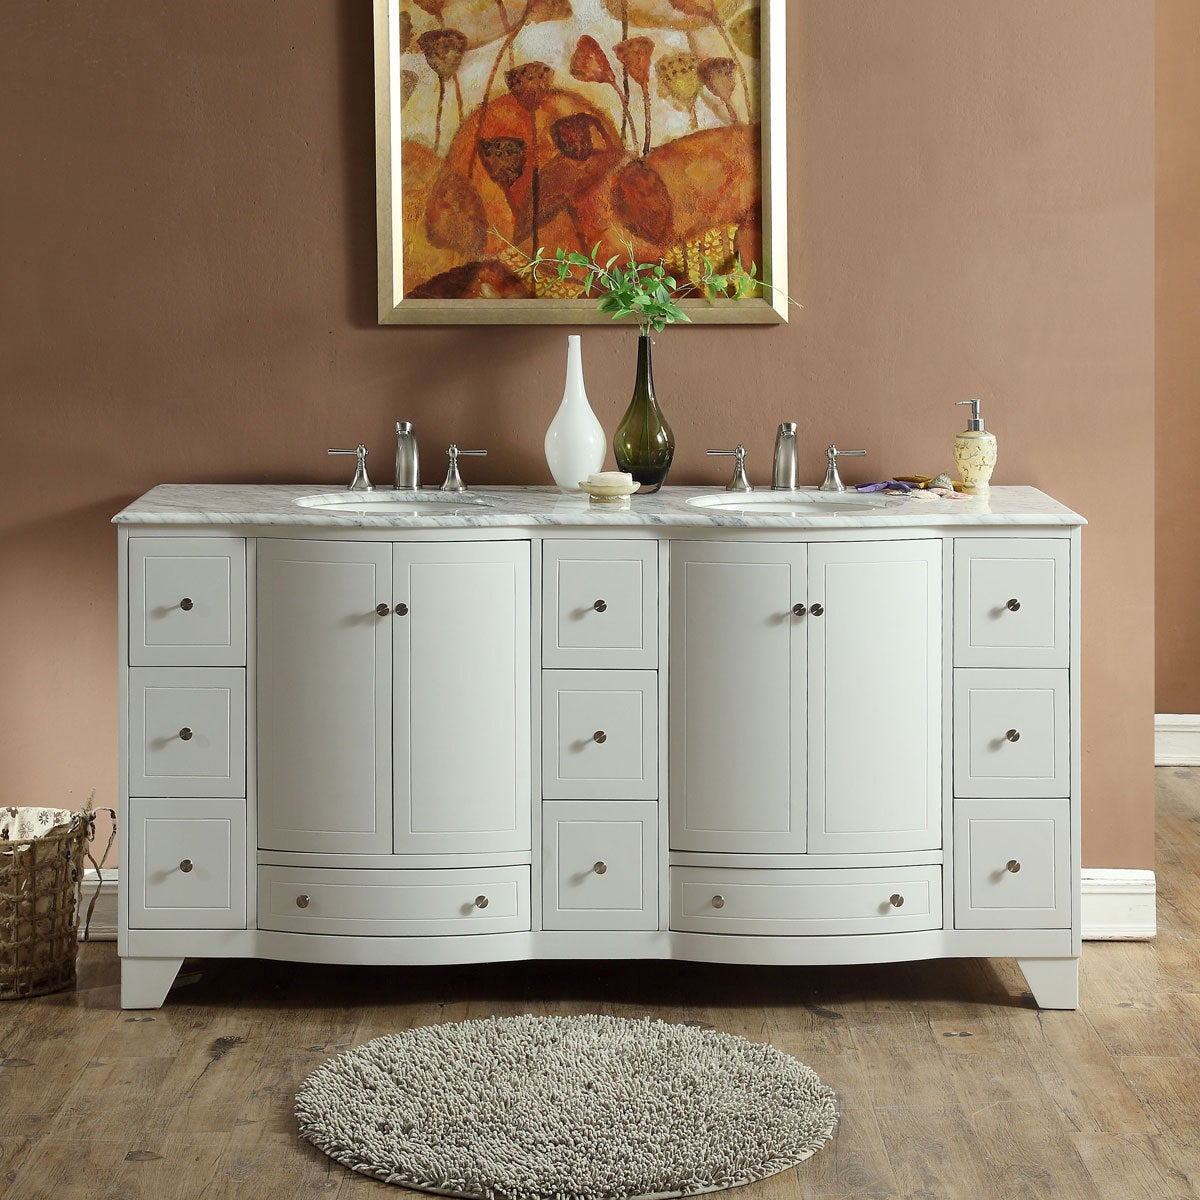 Shop Silkroad Exclusive 72 Inch Transitional Bathroom Vanity Double